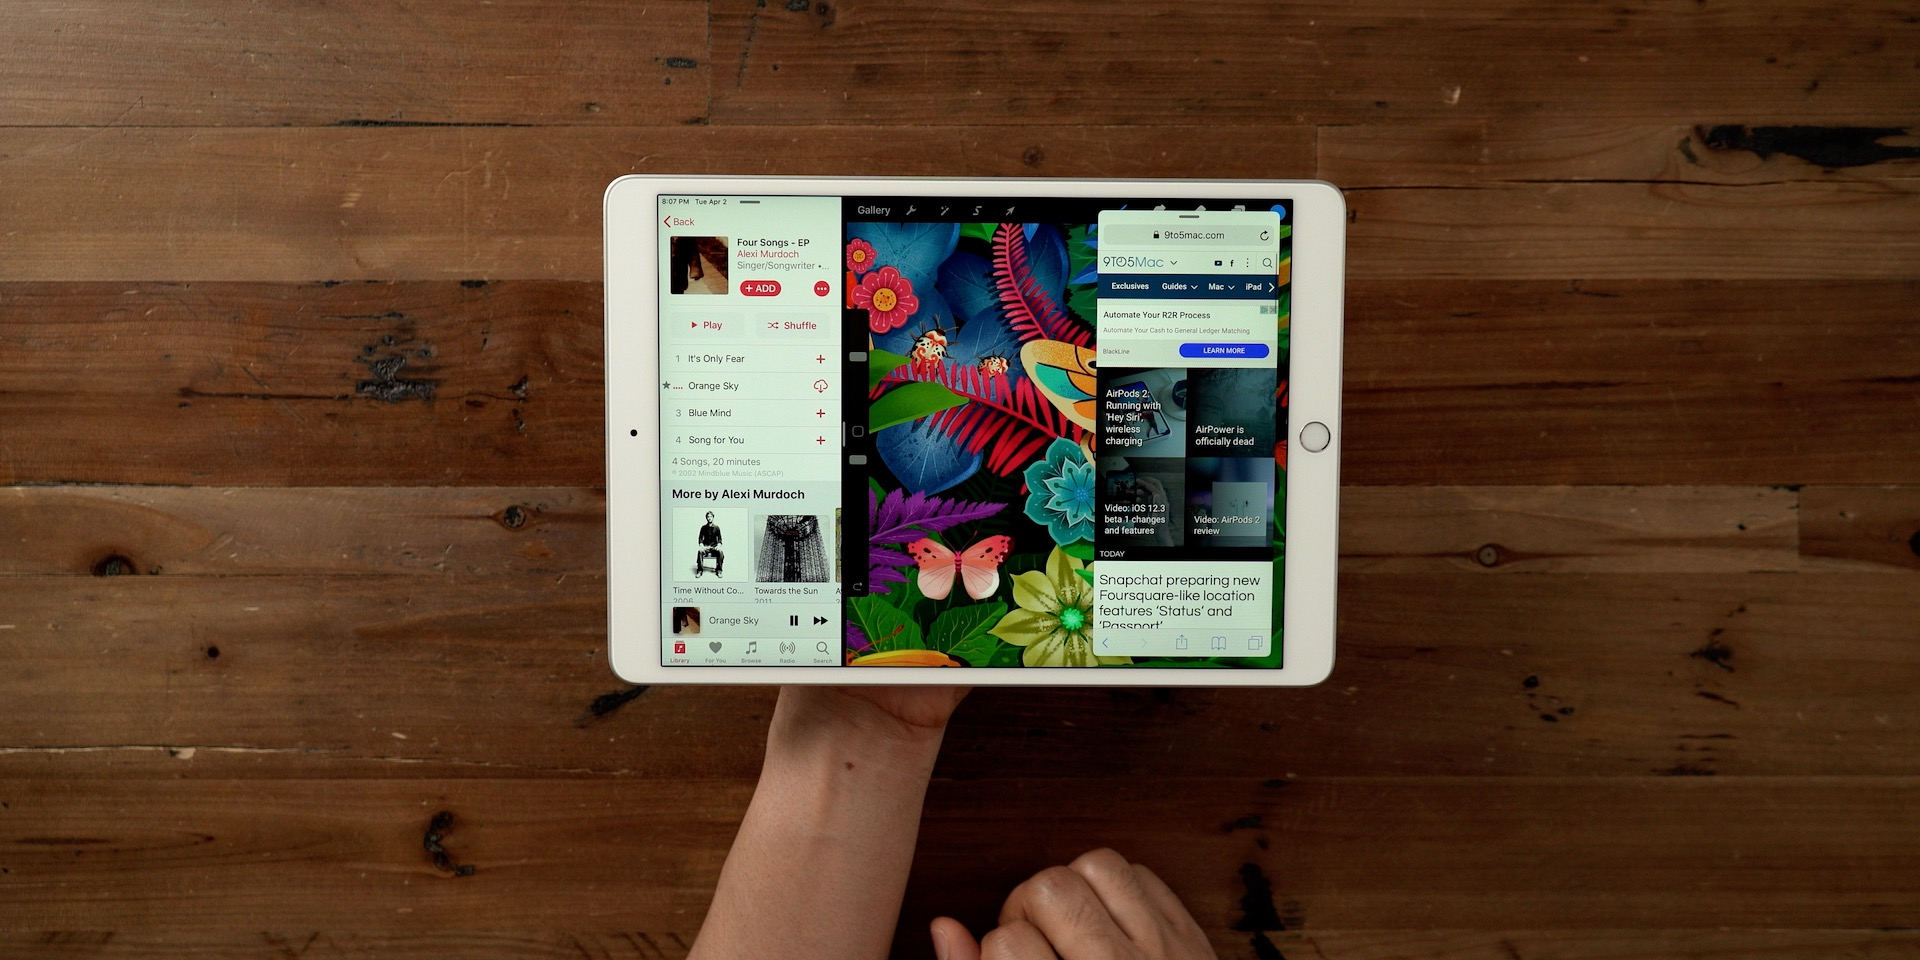 Apple's 2019 iPad Air sees first notable price drop since it was announced